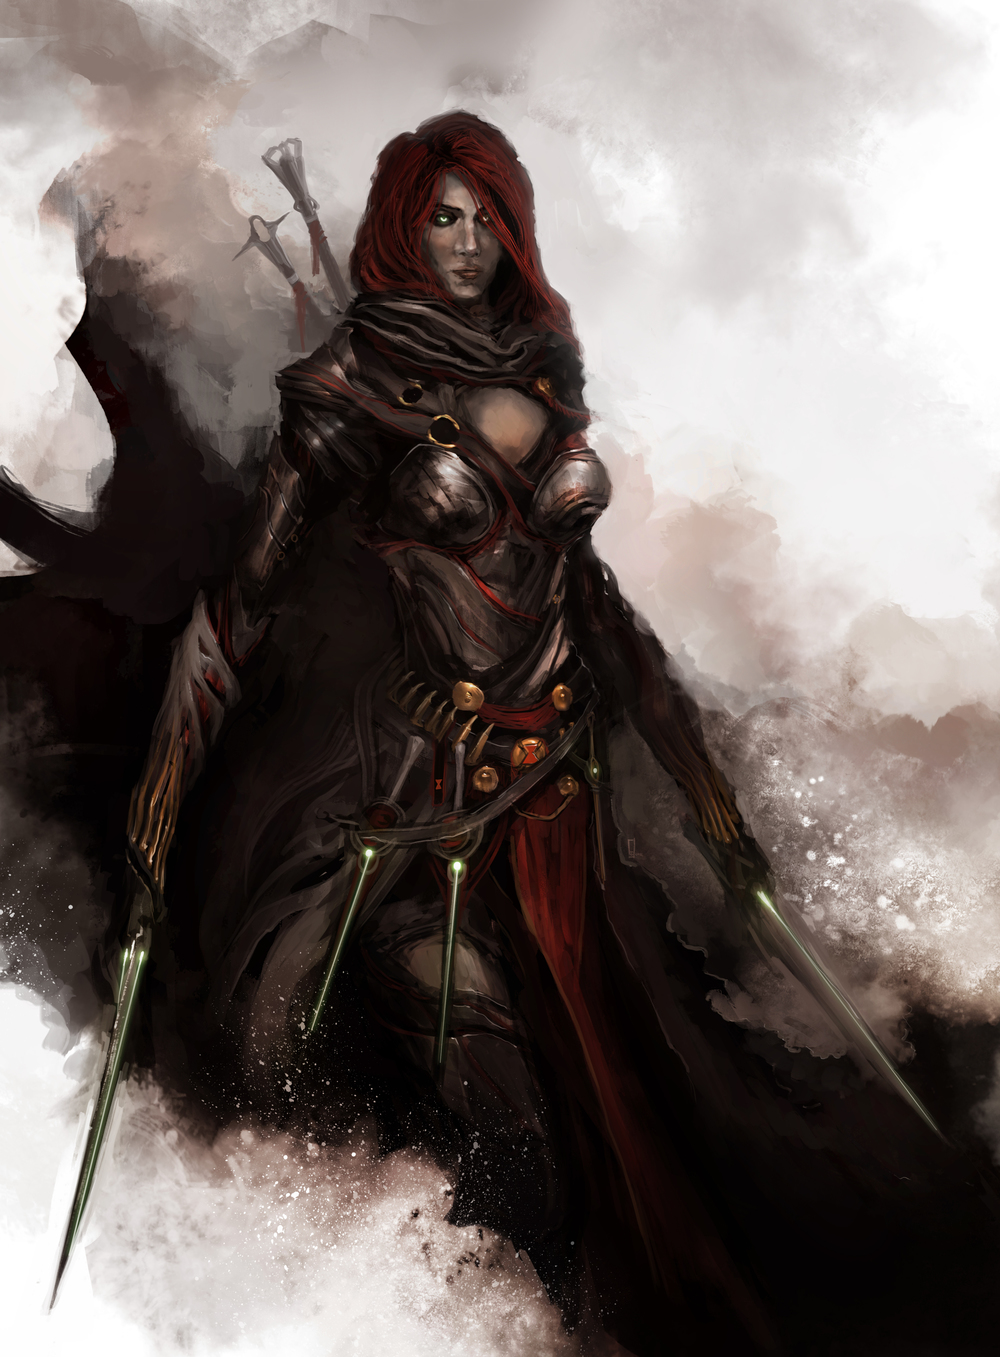 the_avengers___black_widow_by_thedurrrrian-d54t4vy.jpg